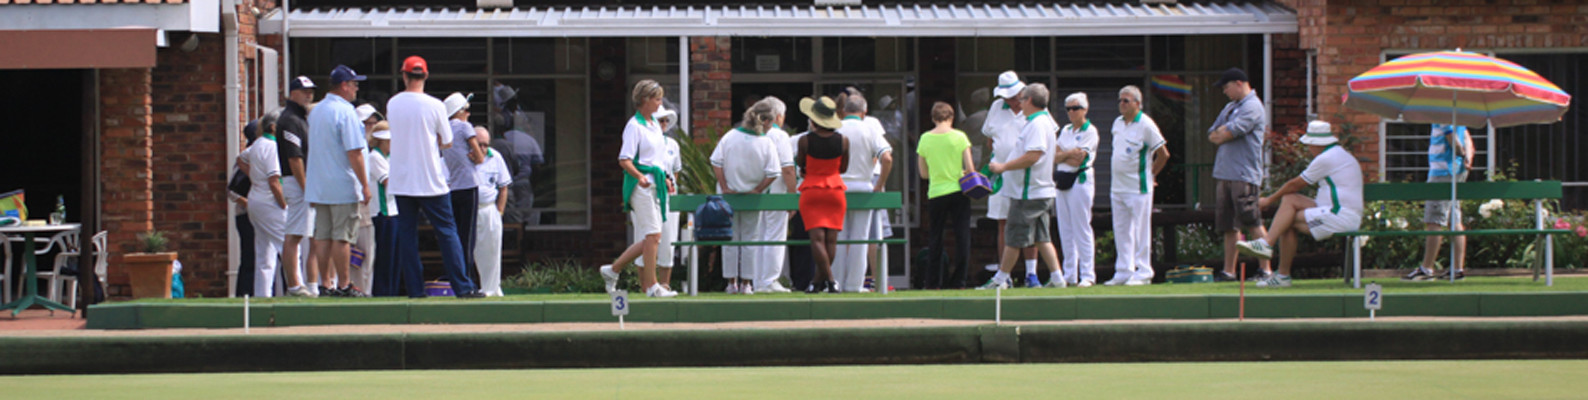 Be part of something at Ferndale Bowling Club